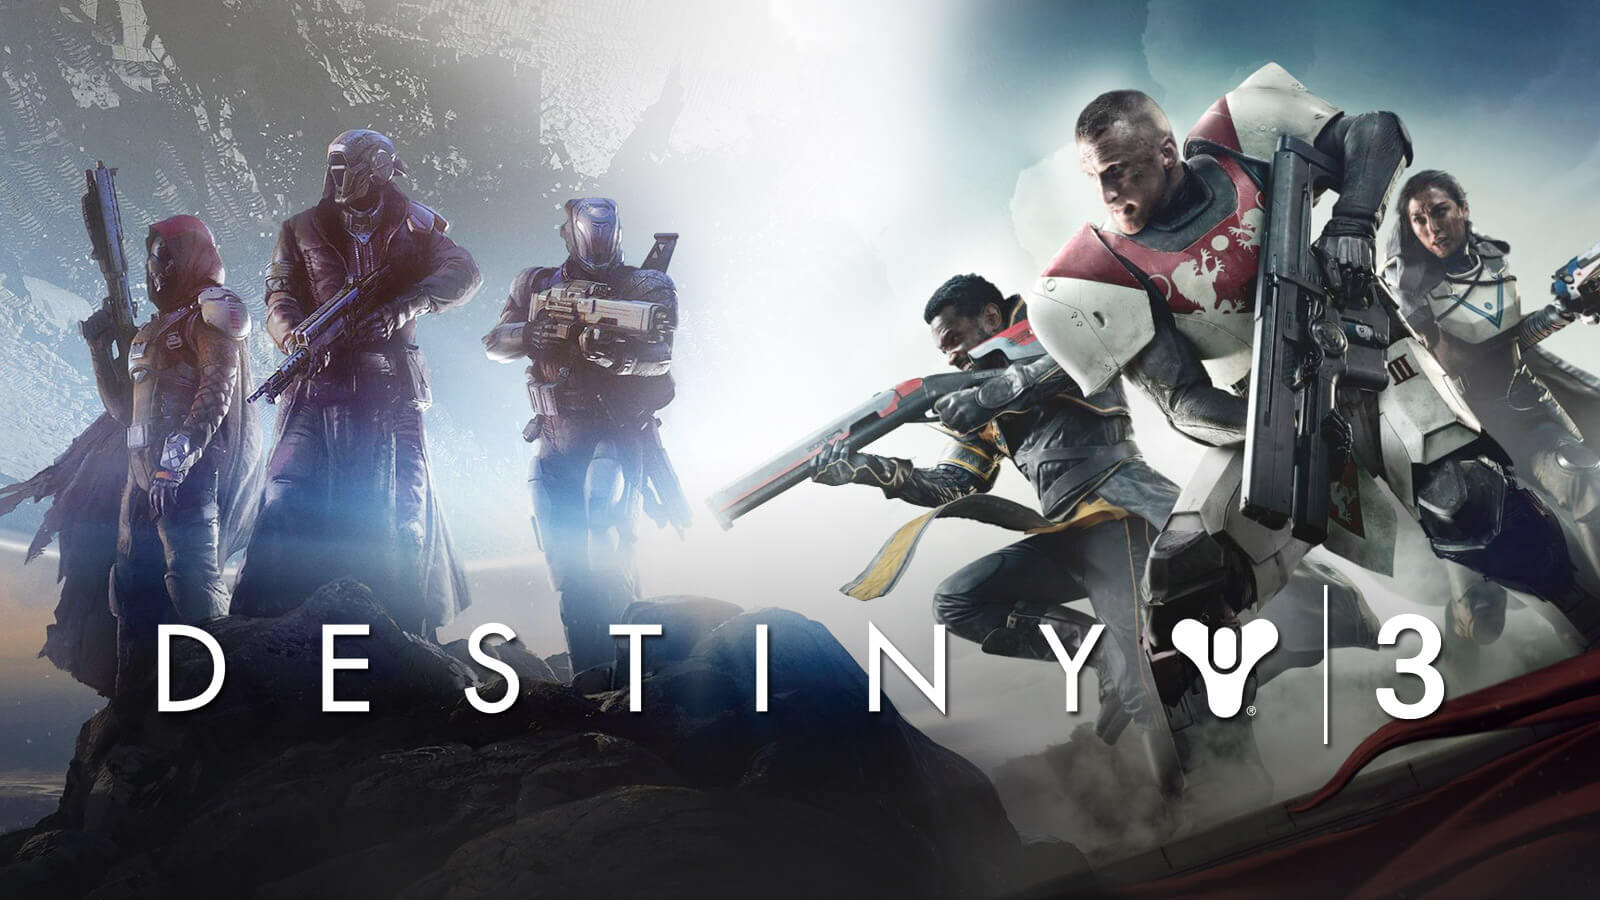 Destiny 3 Leaks. BUNGIE TEASES NEW ENEMIES! The Coming War With The Darkness (The Veil)